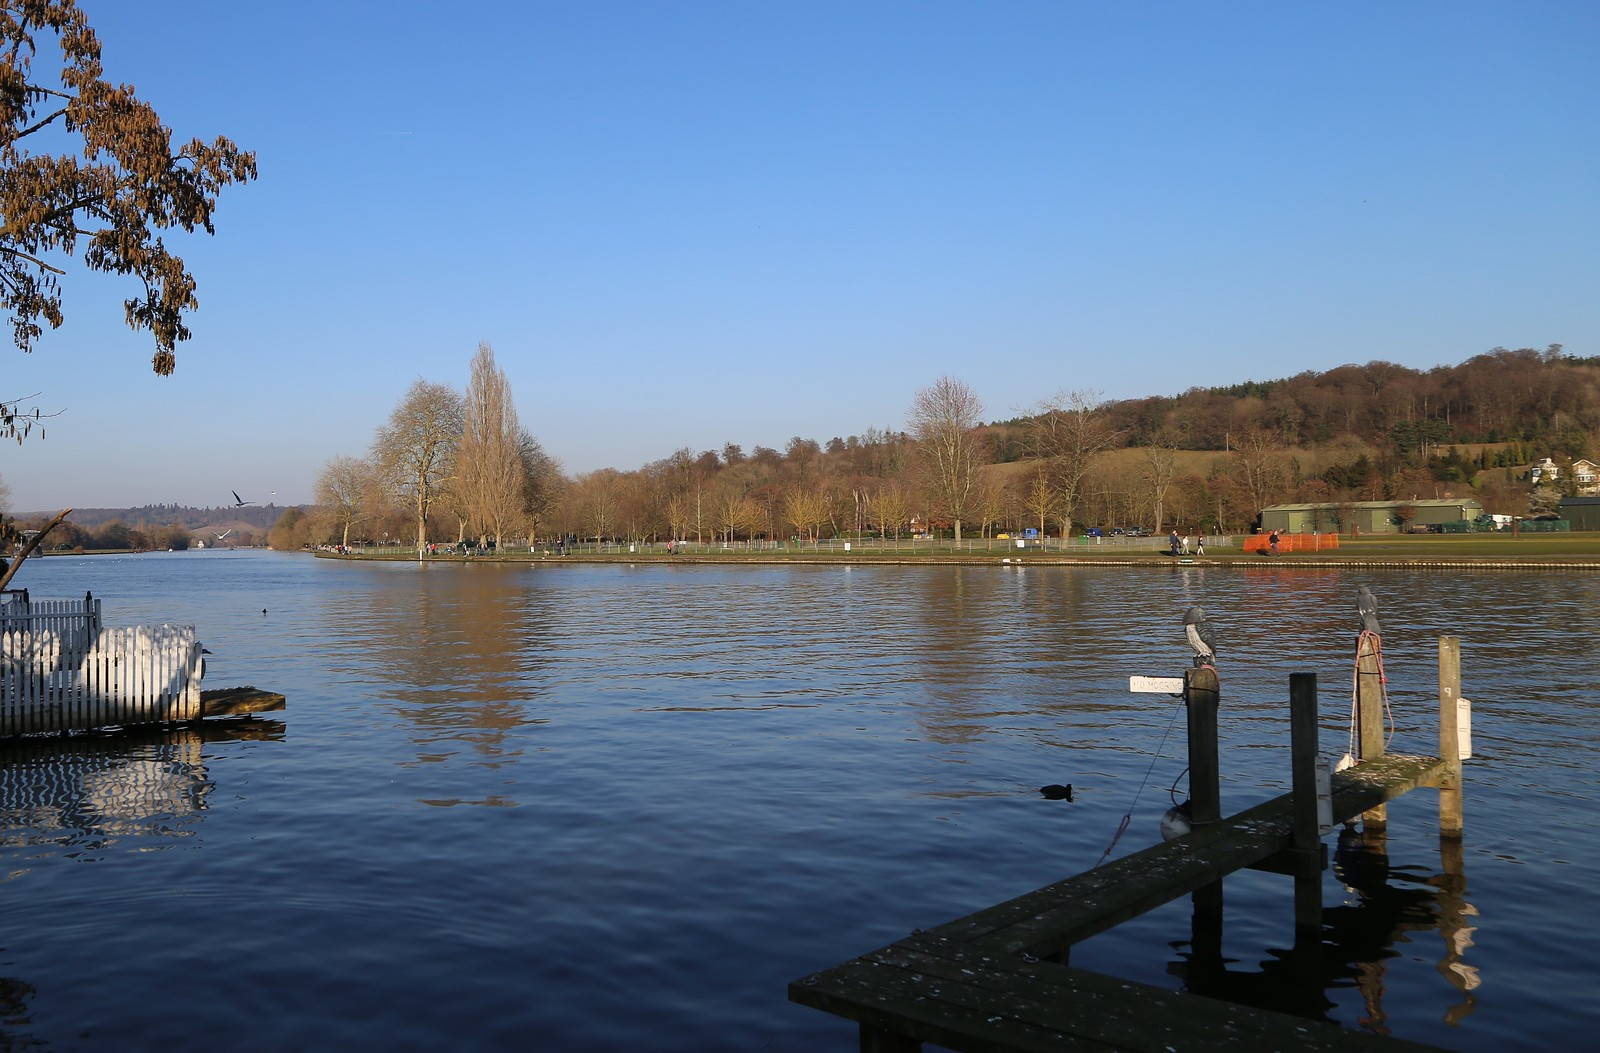 Looking across the Thames - Henley